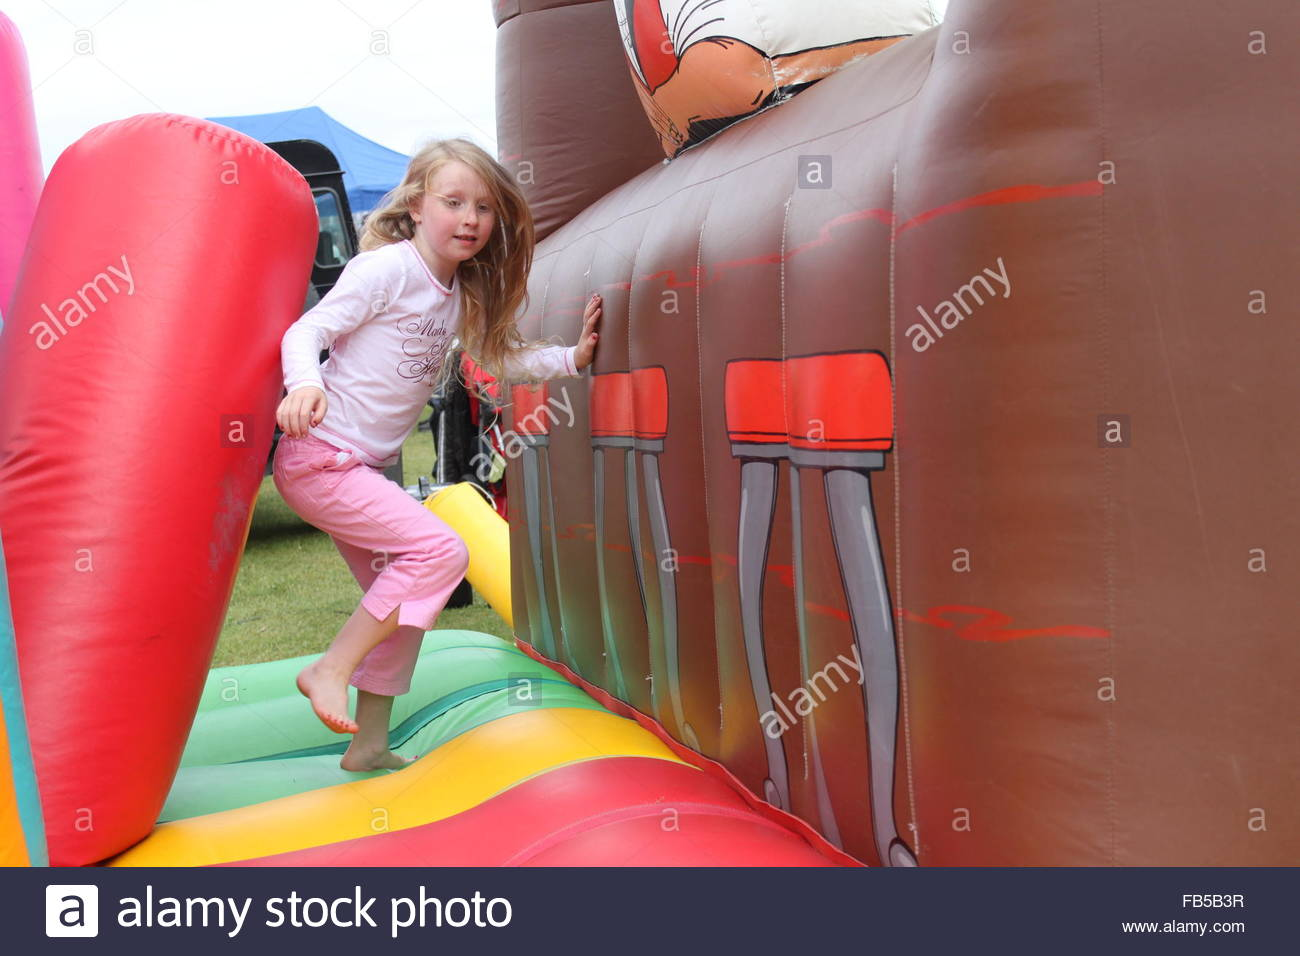 Young, cute blonde girl on a bouncy castle wearing pink summer clothes - Stock Image